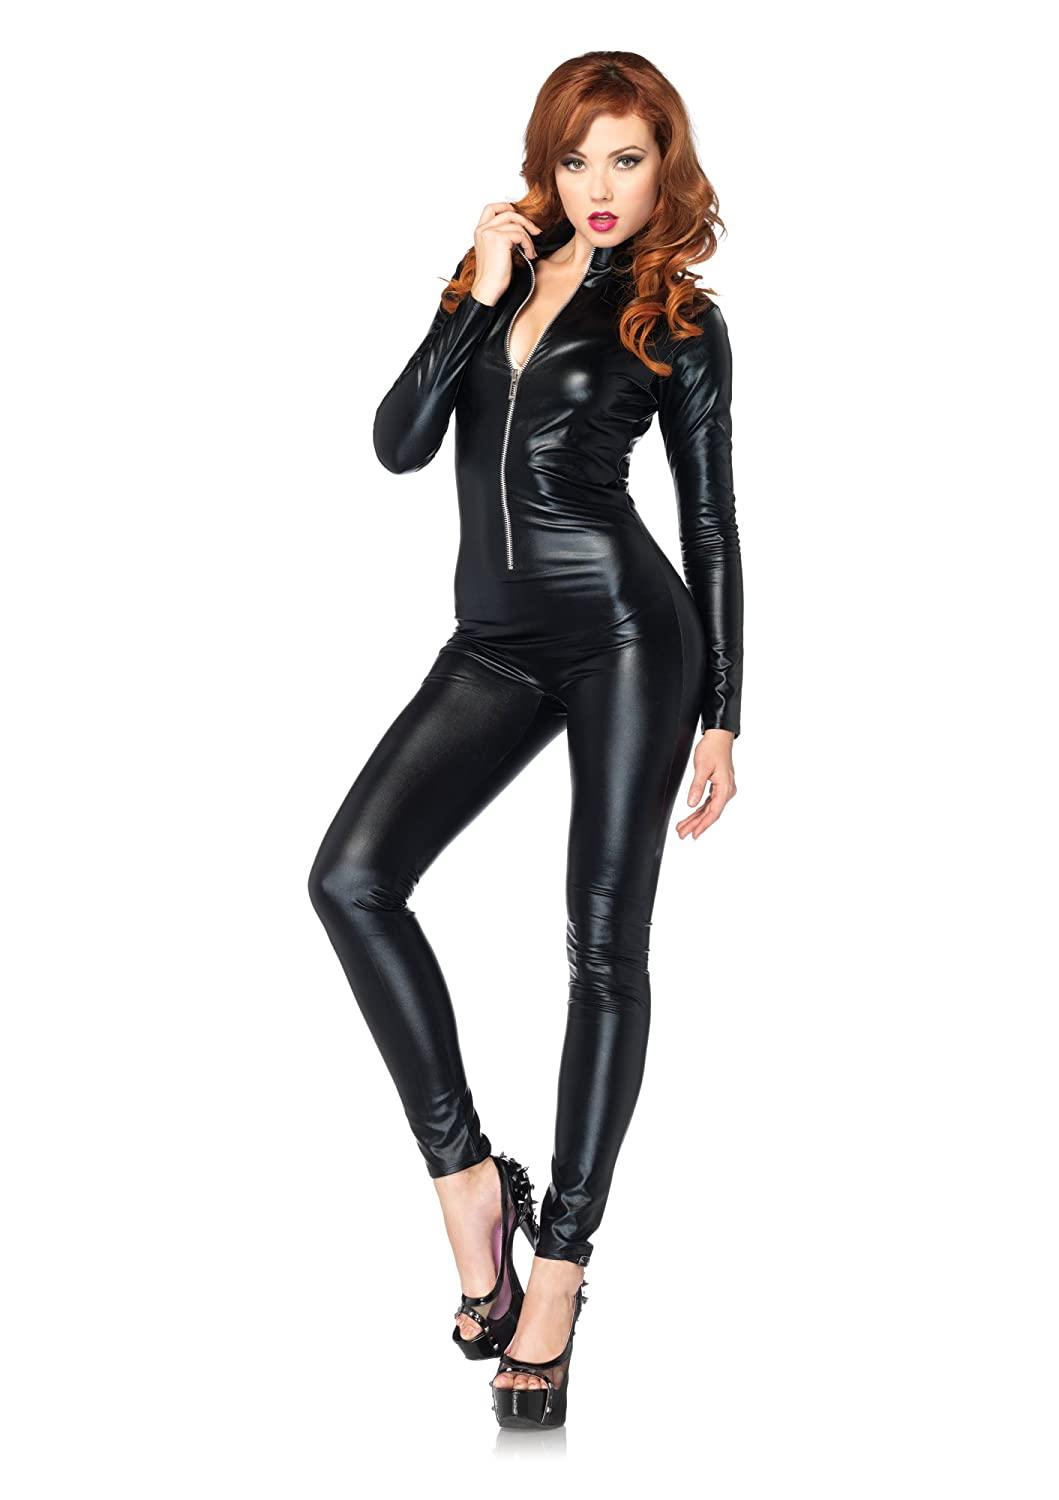 Leg Avenue Costumes Wet Look Zipper Front Cat Suit  sc 1 st  Creative Costume Ideas & Sexy Vampire Death Dealer Selene Underworld Costumes For Women